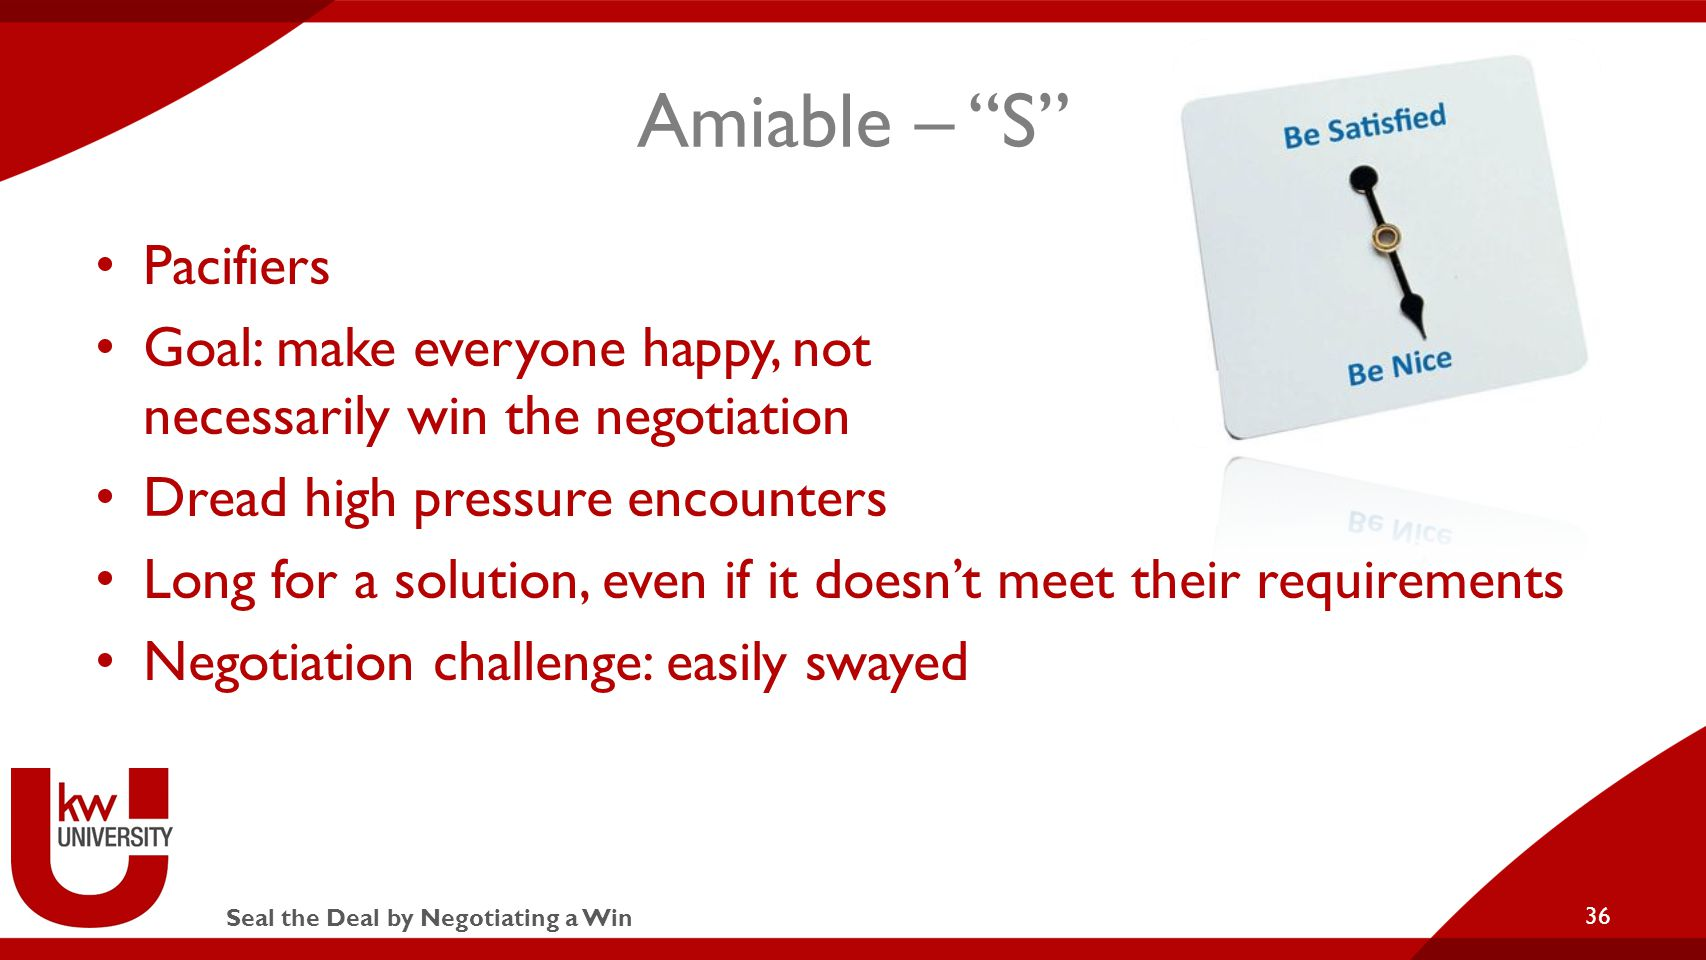 Seal the Deal by Negotiating a Win Amiable – S Pacifiers Goal: make everyone happy, not necessarily win the negotiation Dread high pressure encounters Long for a solution, even if it doesn't meet their requirements Negotiation challenge: easily swayed 36